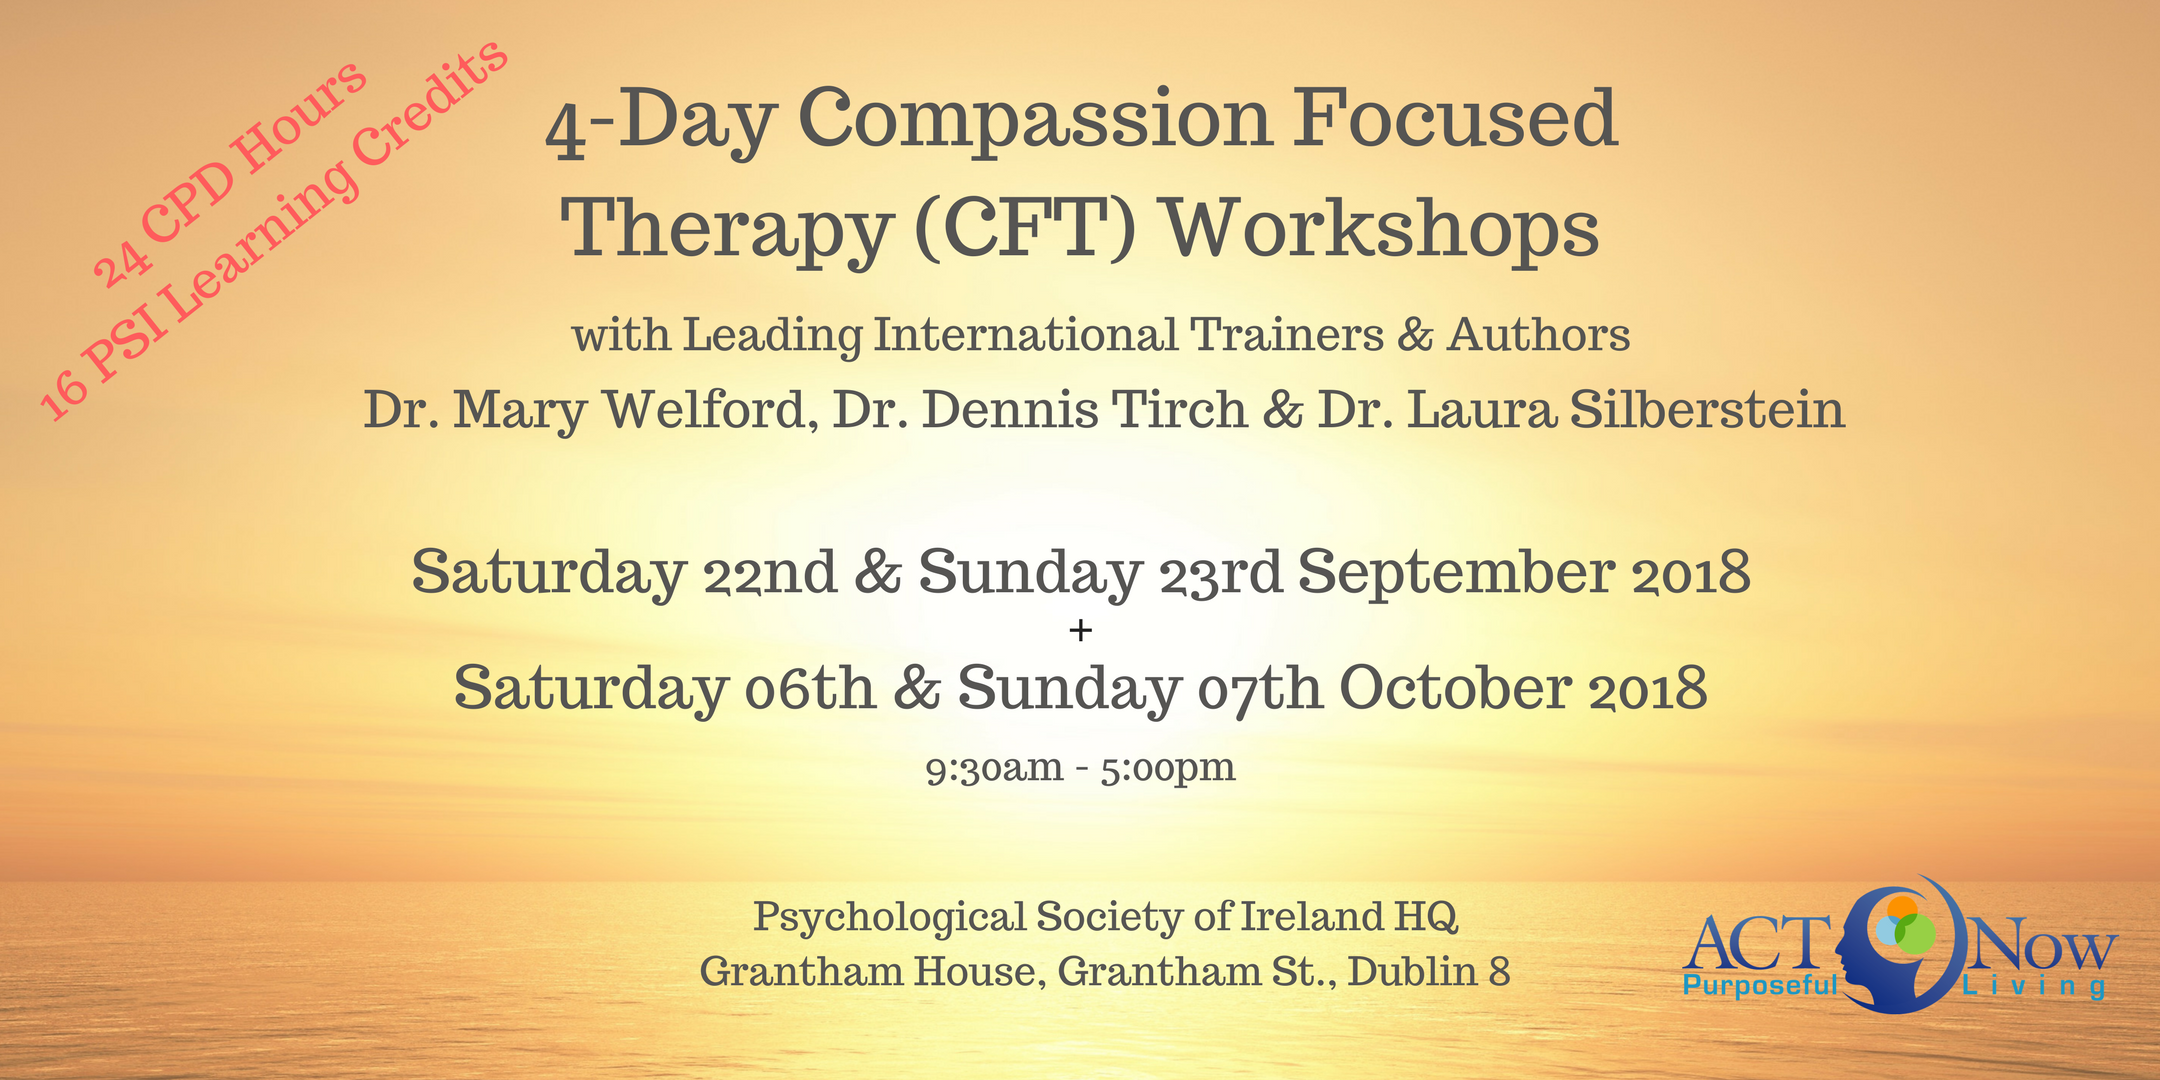 4-Day Compassion Focused Therapy (CFT) Workshops with Leading International Trainers & Authors Dr. Mary Welford, Dr. Dennis Tirch & Dr. Laura Silberstein